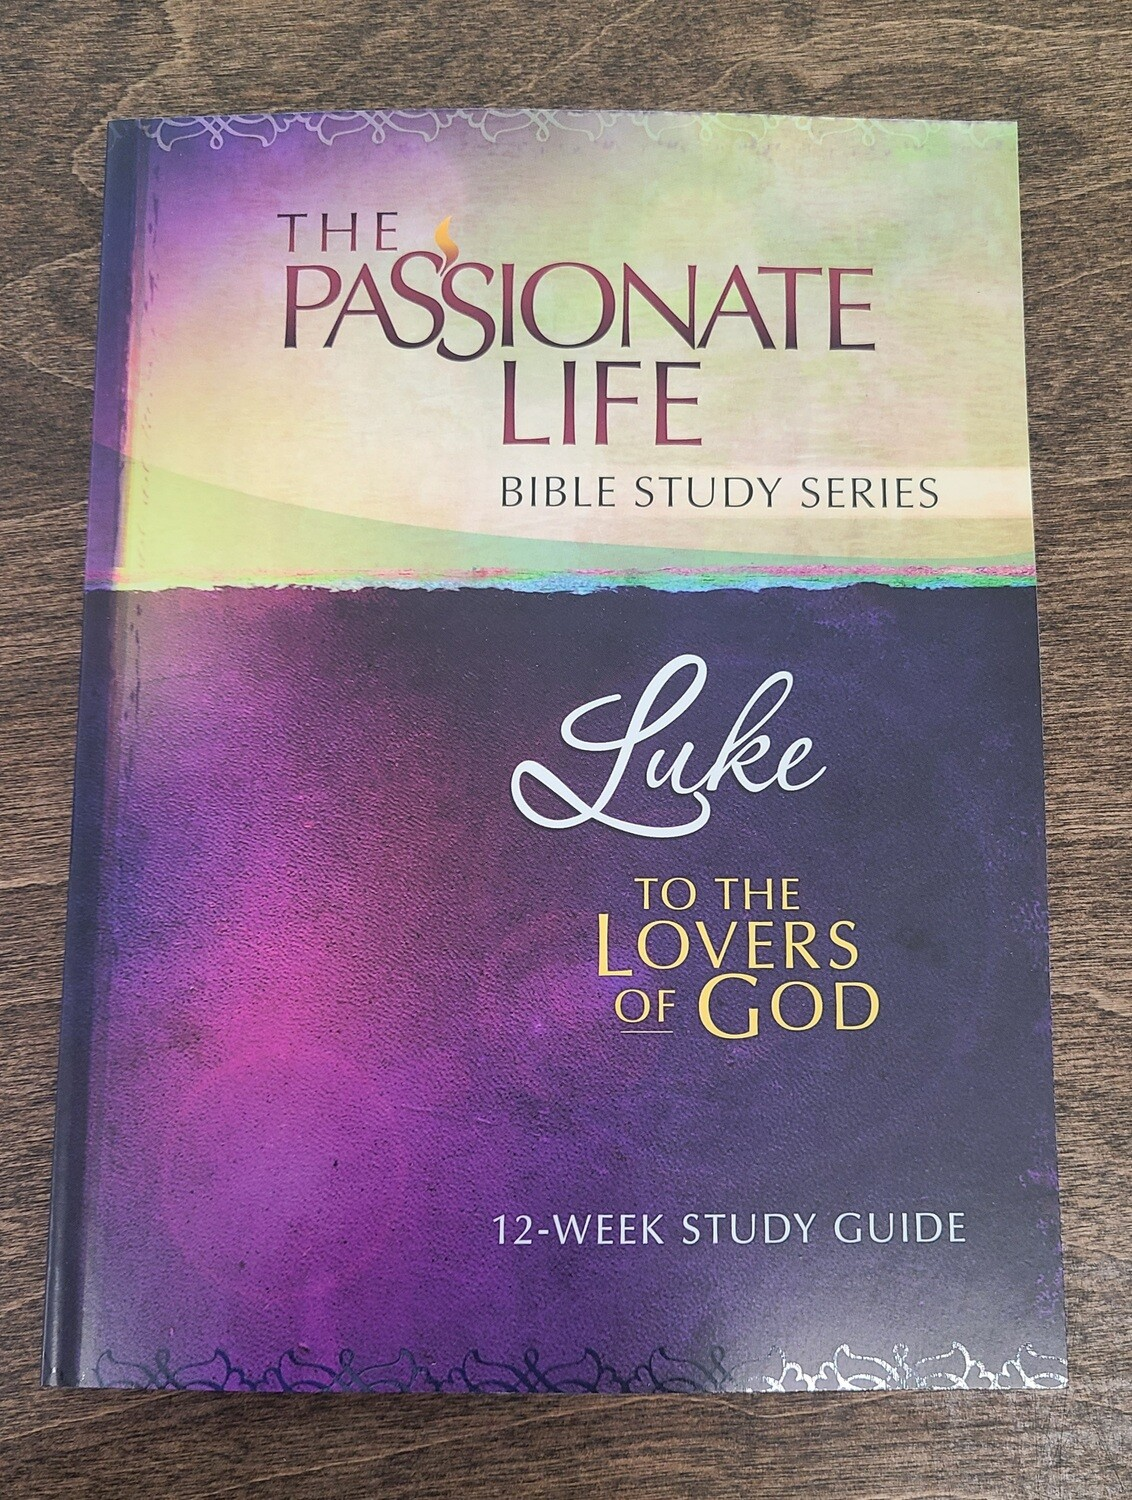 The Passionate Life Bible Study Series - Luke: To the Lovers of God 12-Week Study Guide by Brian Simmons